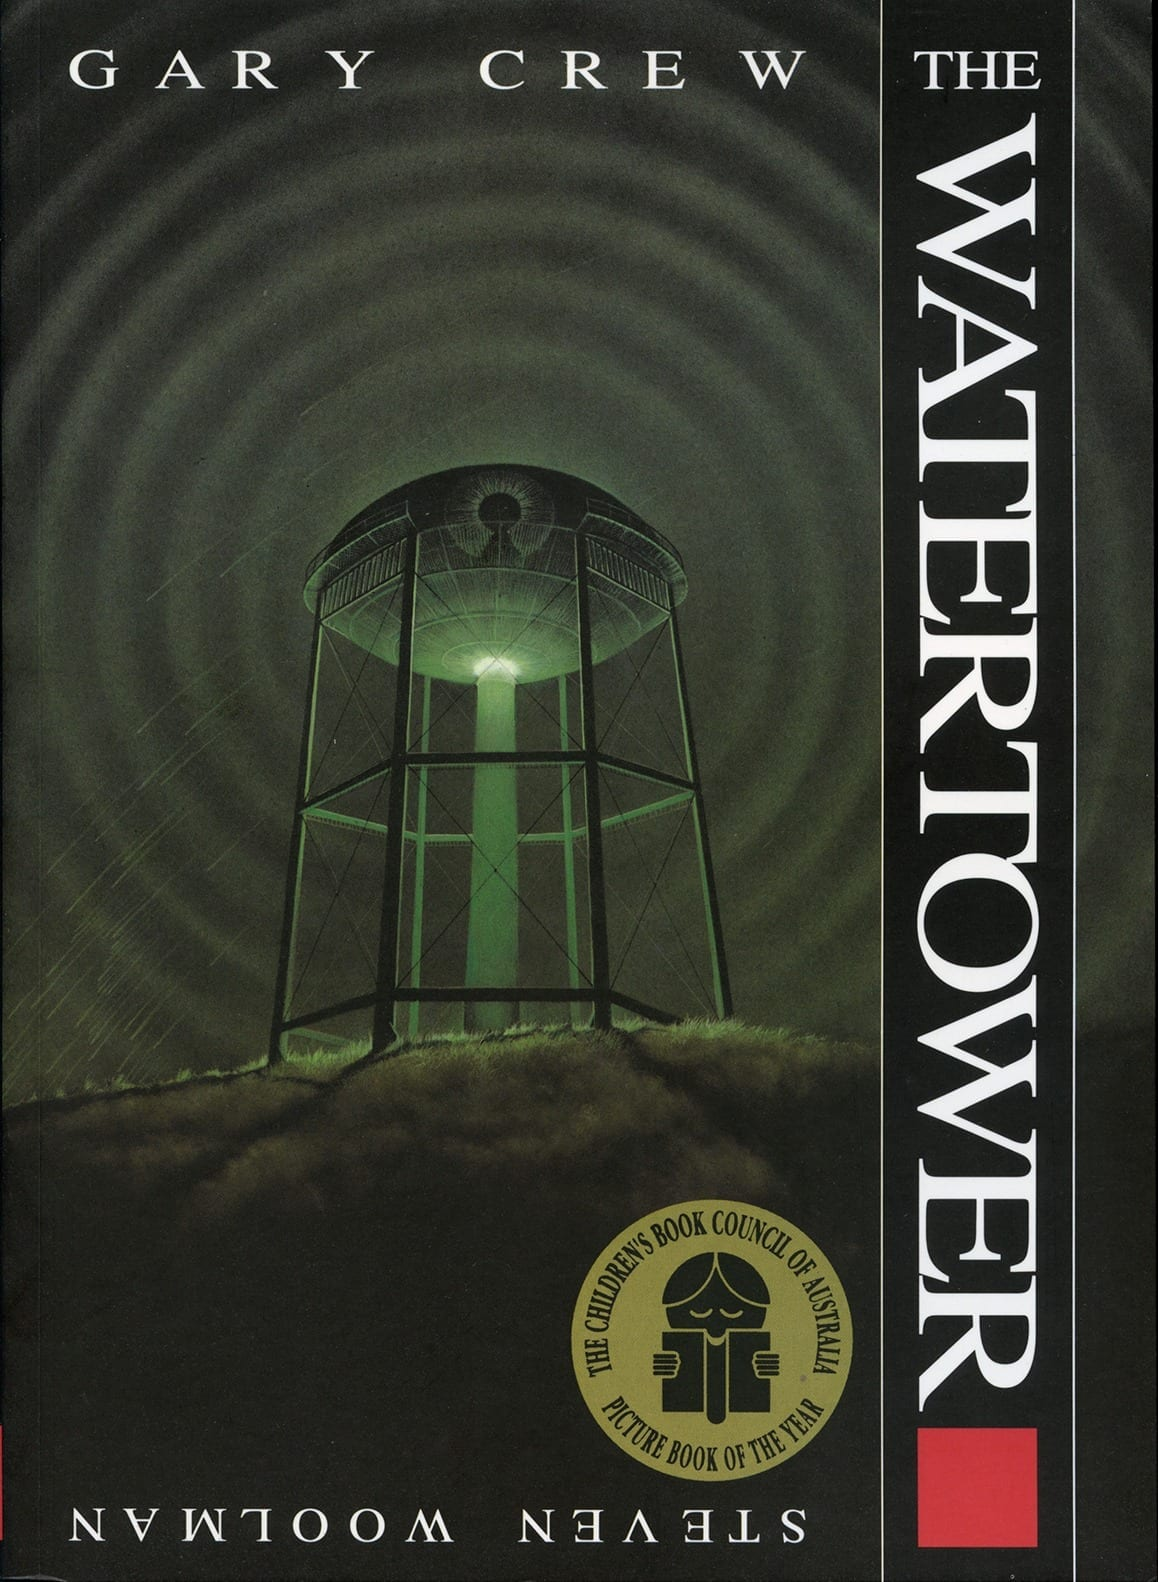 The Watertower